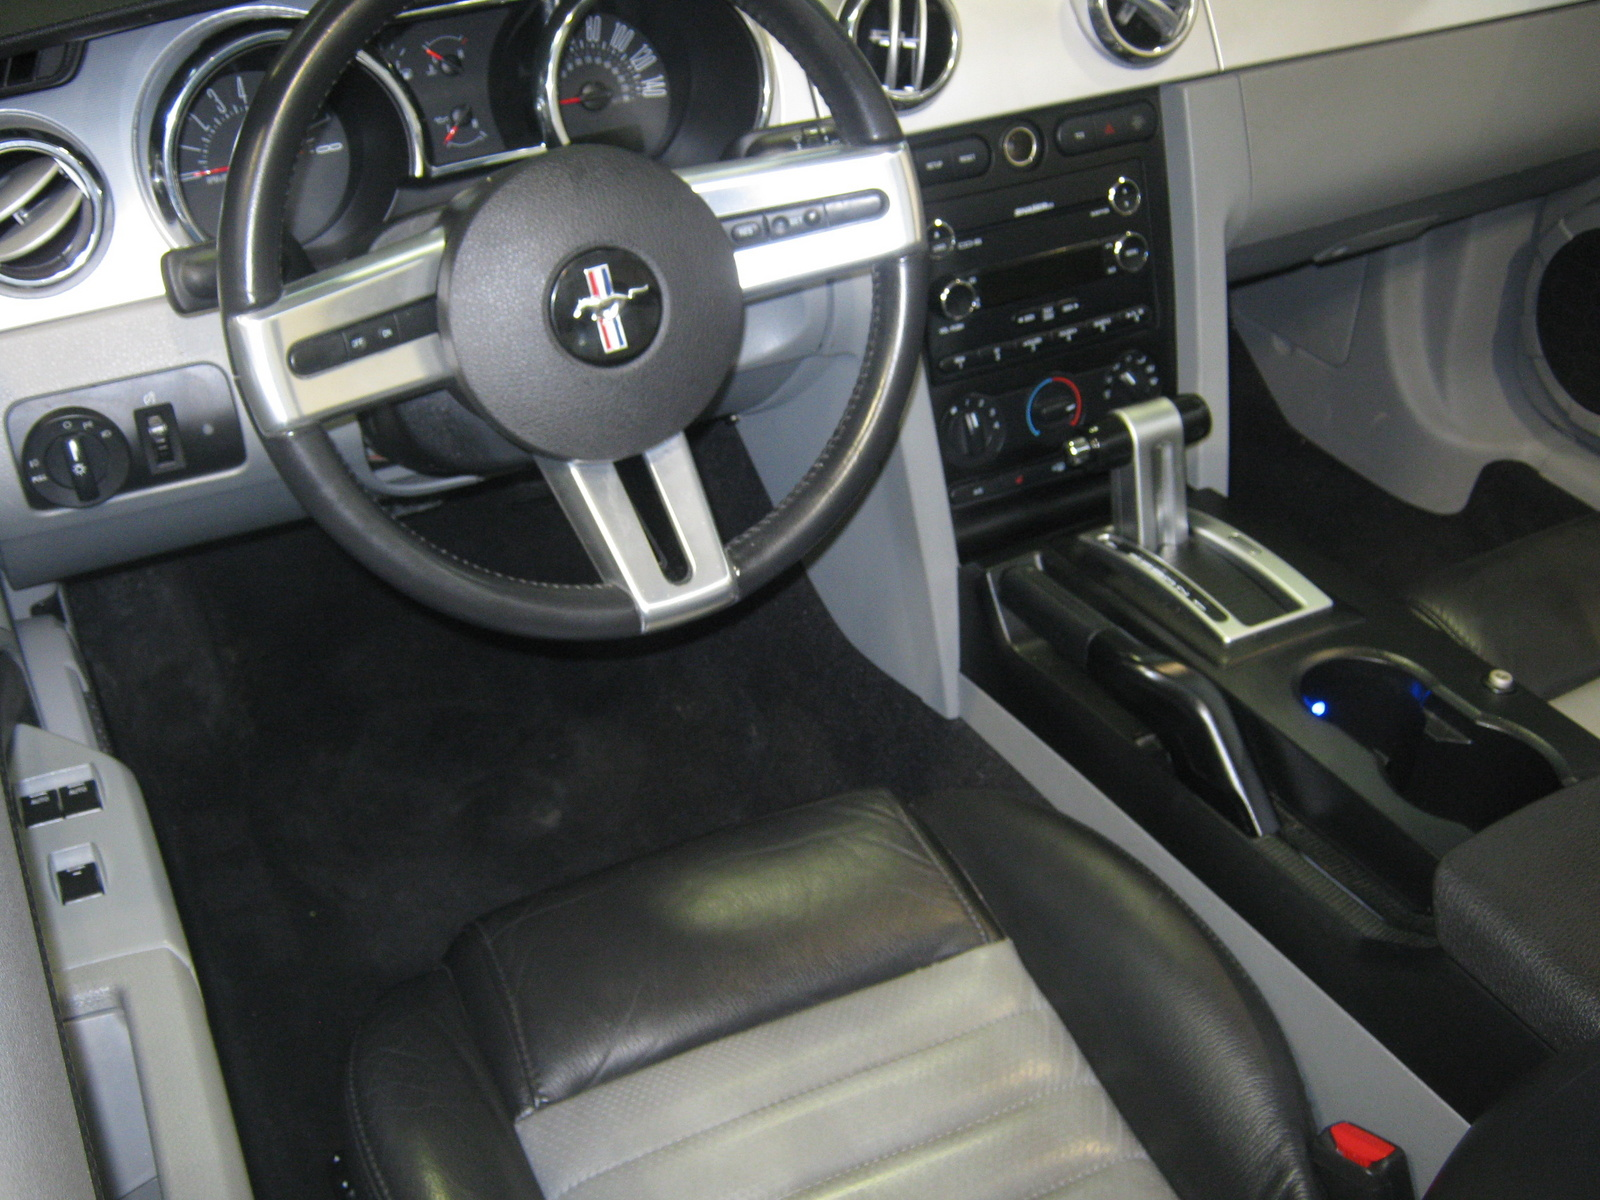 2008 Ford Mustang Interior Pictures Cargurus